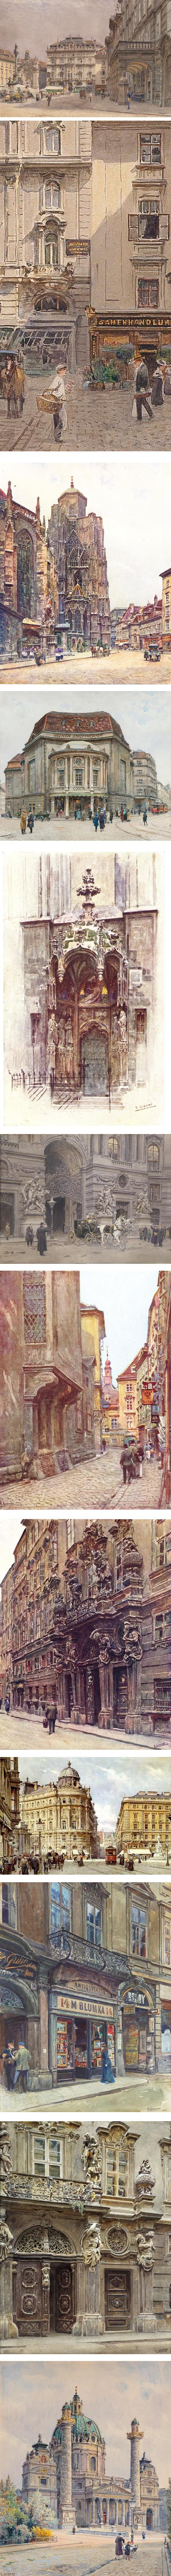 Ernst Graner, Austrian watercolor painter, watercolors of Vienna